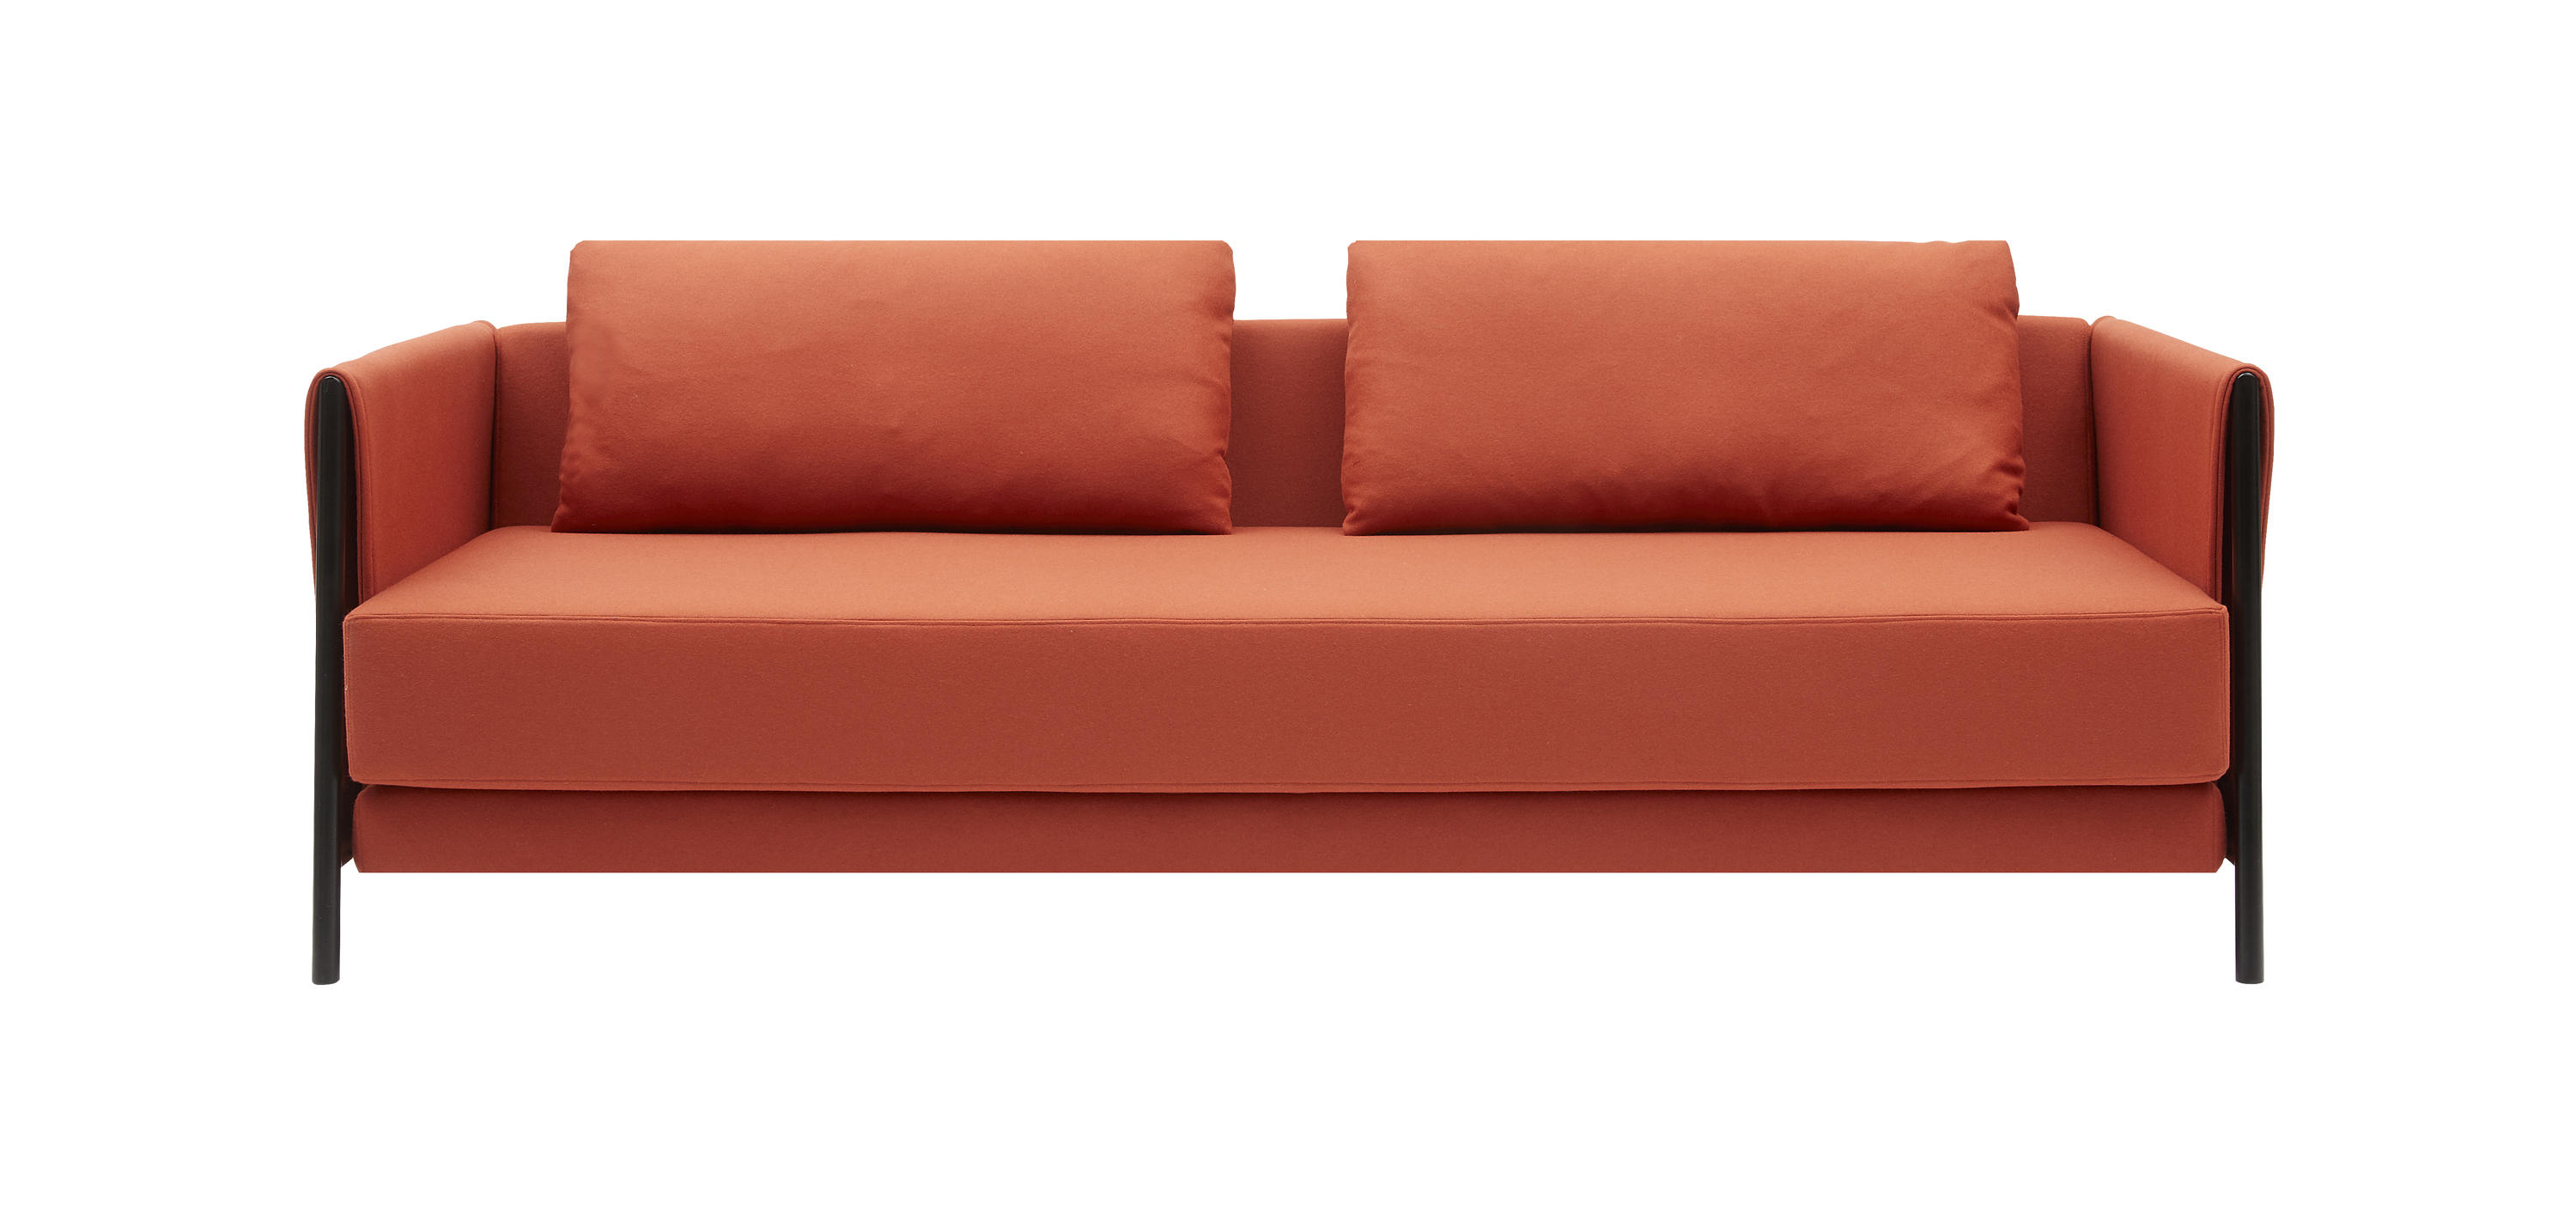 MADISON Sofa by Softline A/S